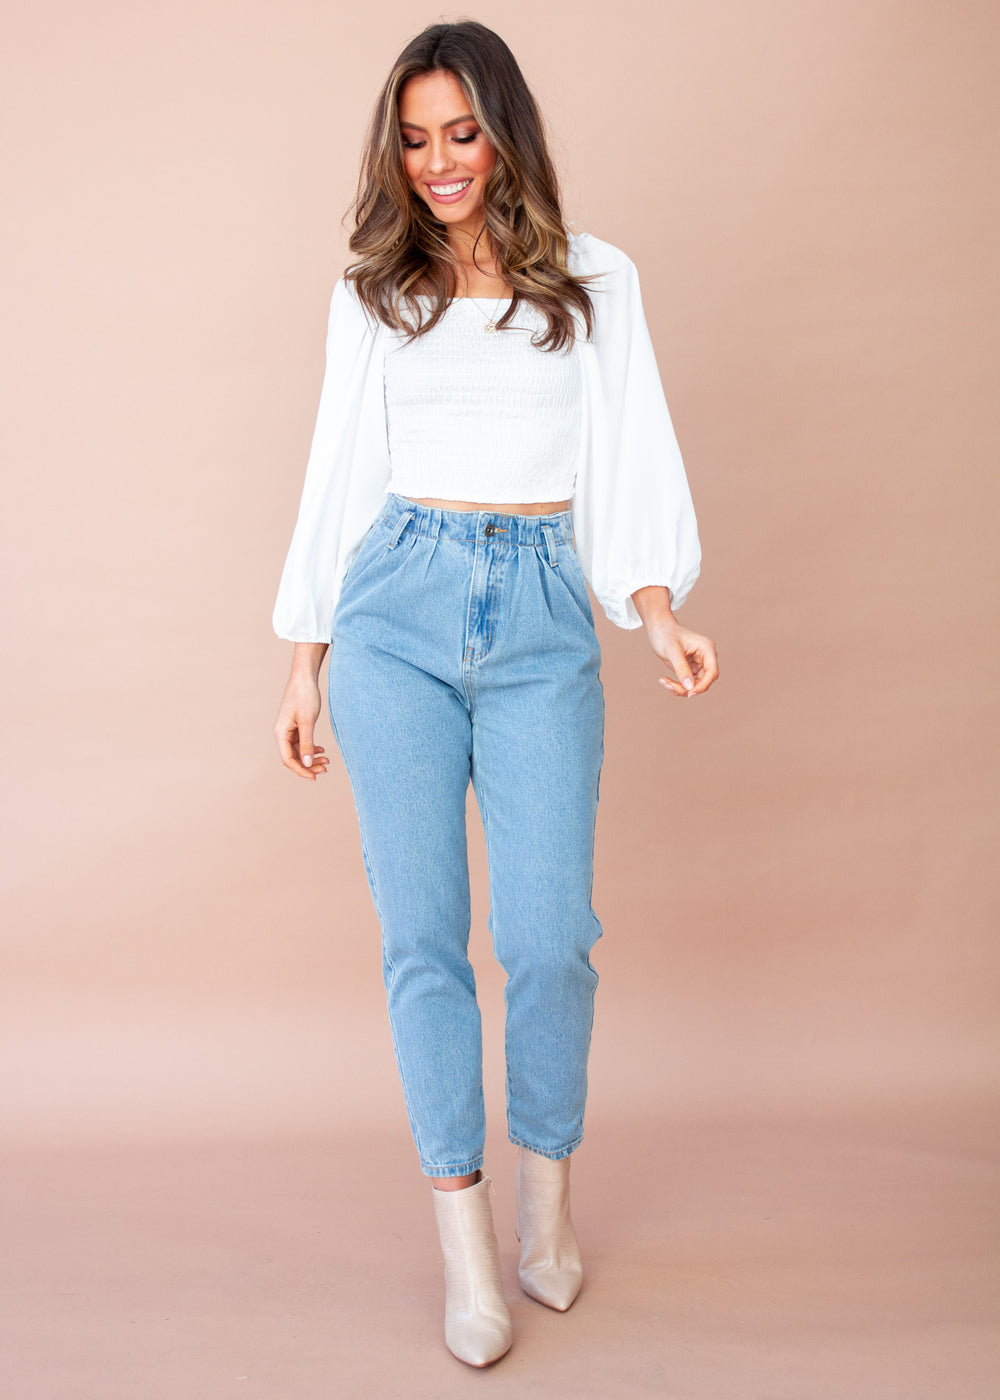 Slow Ride Cropped Blouse - White